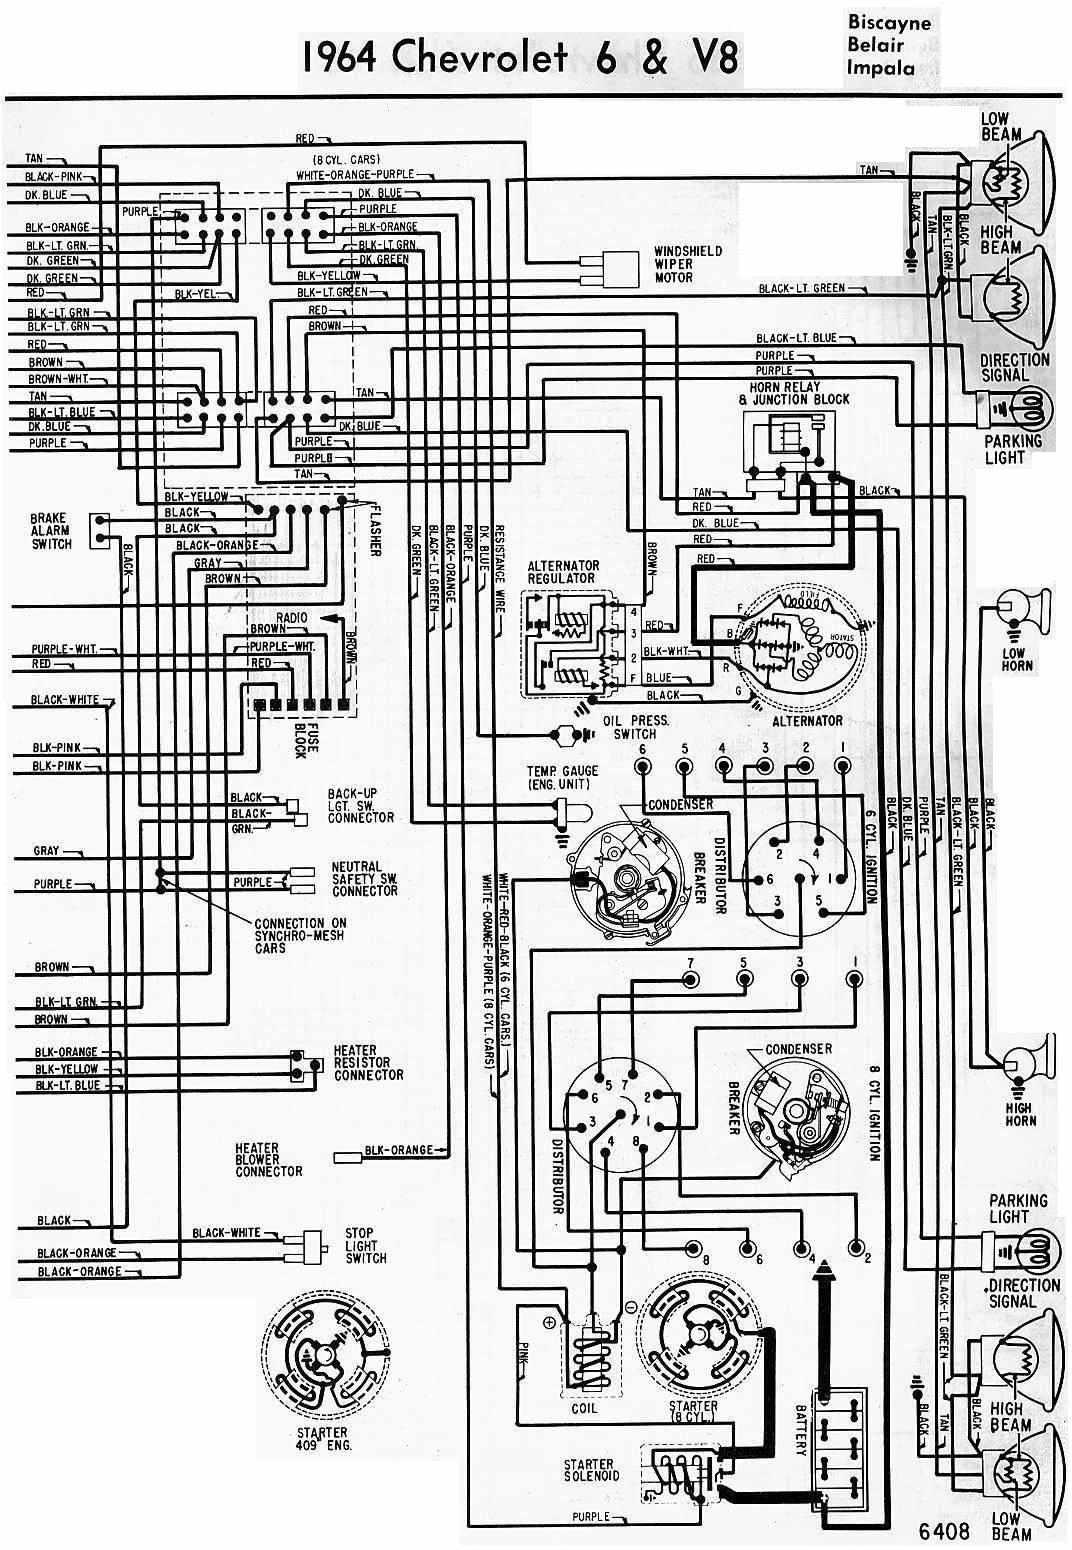 Electrical+Wiring+Diagram+Of+1964+Chevrolet+6+And+V8 1964 bel air wire diagram colors incorrect chevytalk free 1964 chevy truck wiring diagram at alyssarenee.co